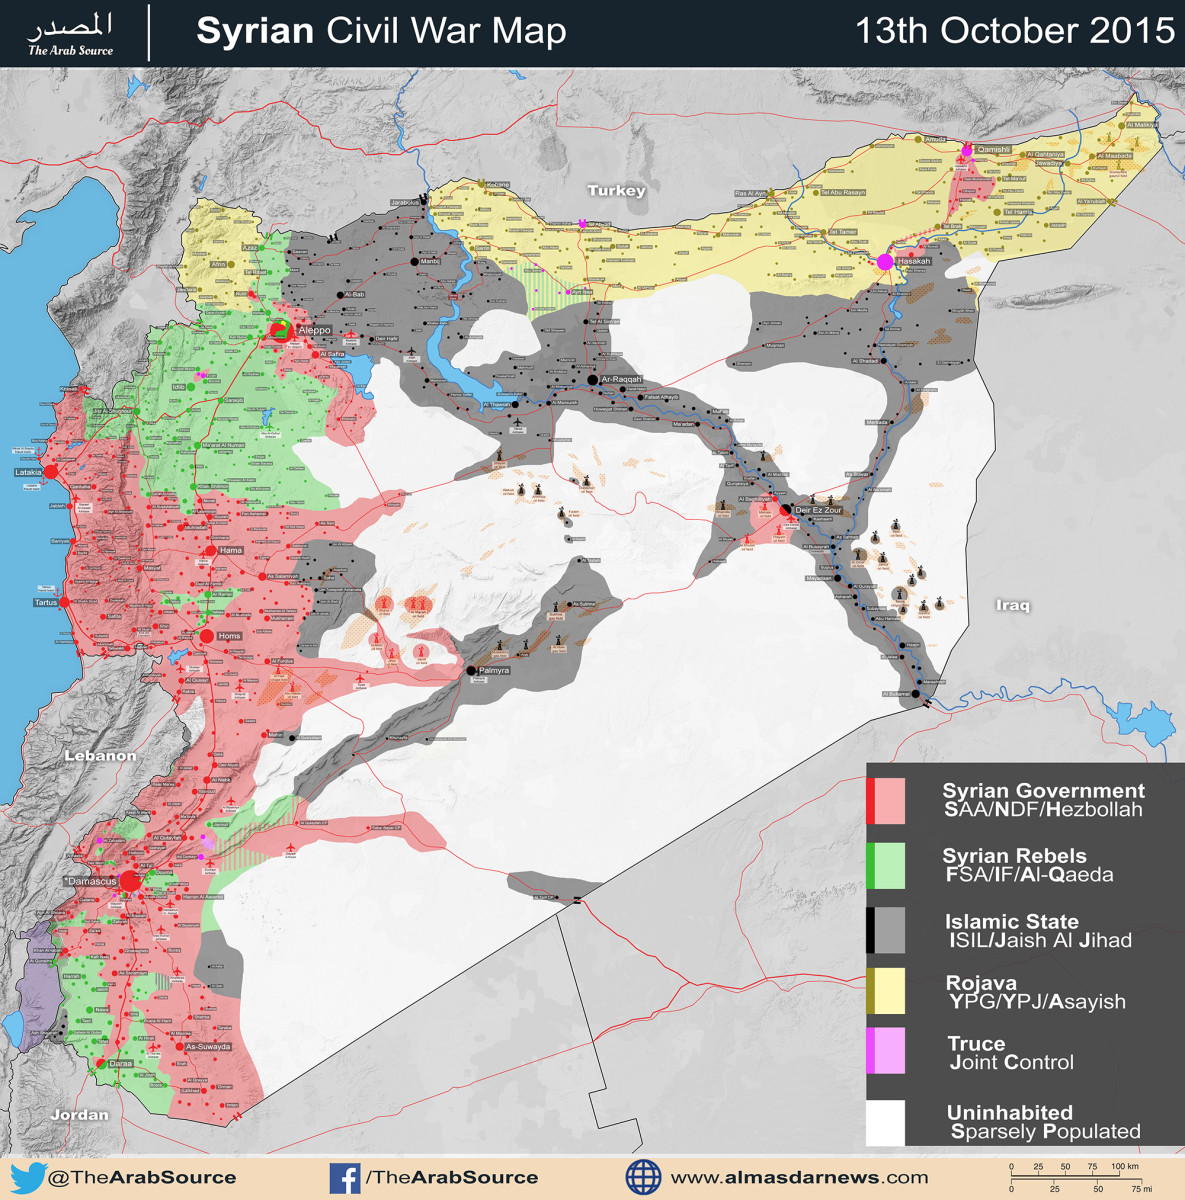 Syrian civil war map (13 october 2015)